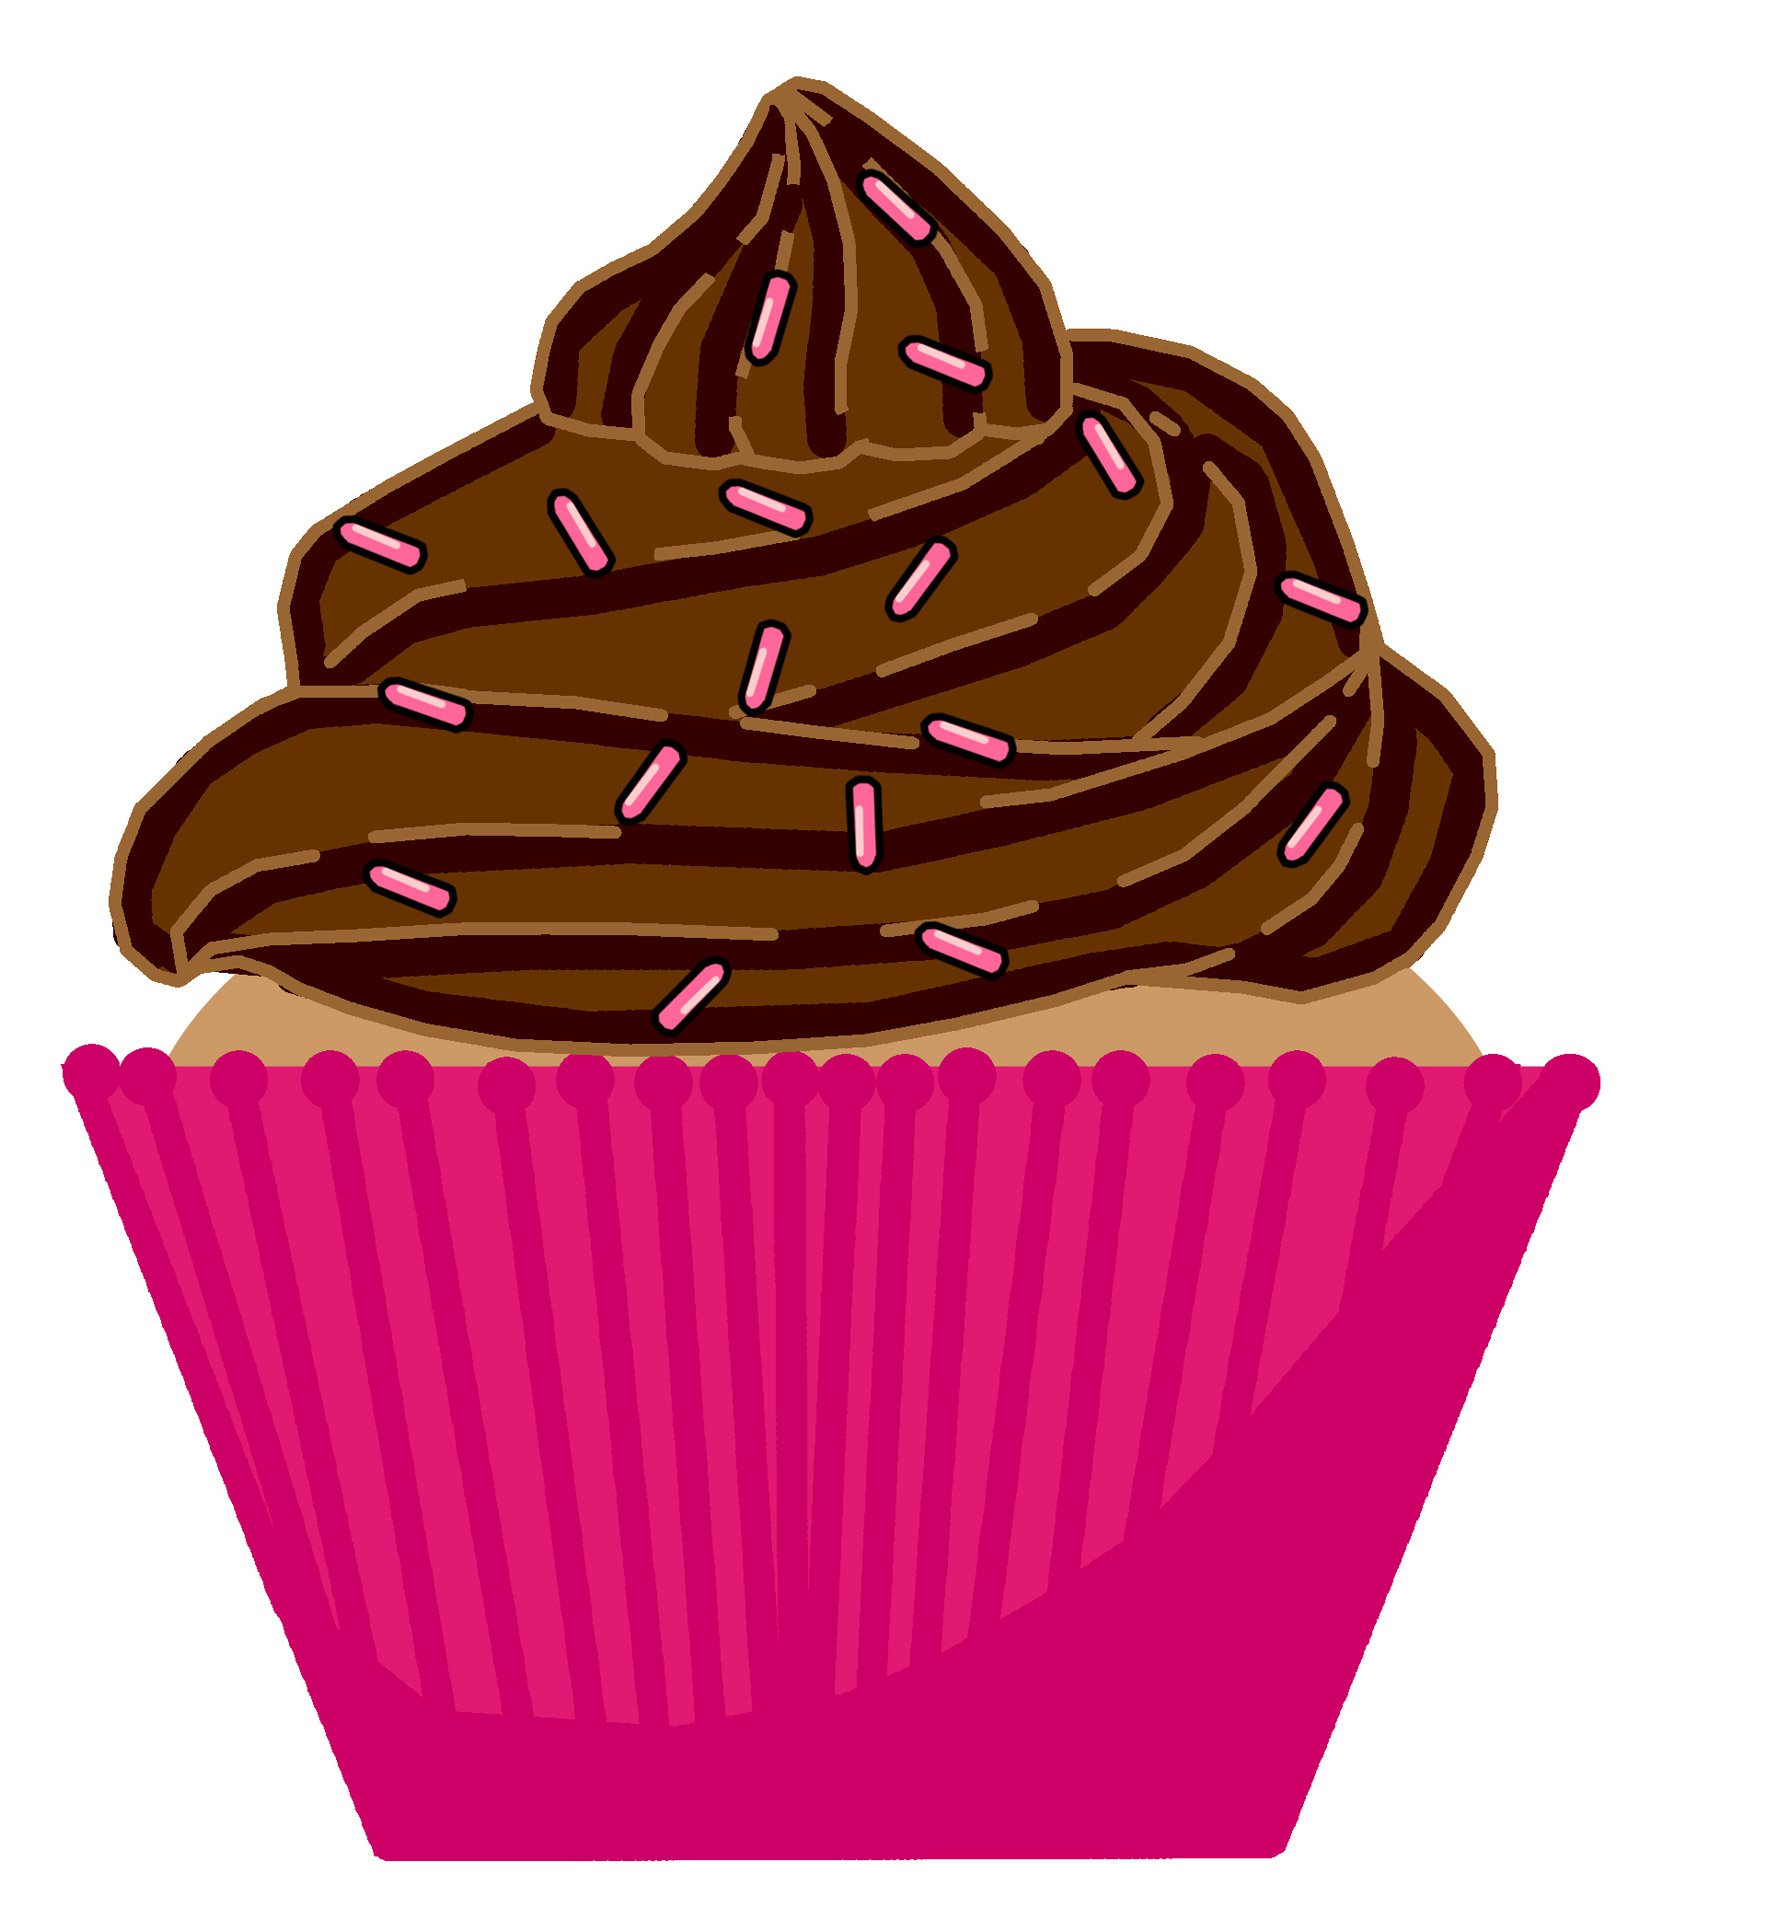 27 cupcakes free cliparts that you can download to you computer and ...